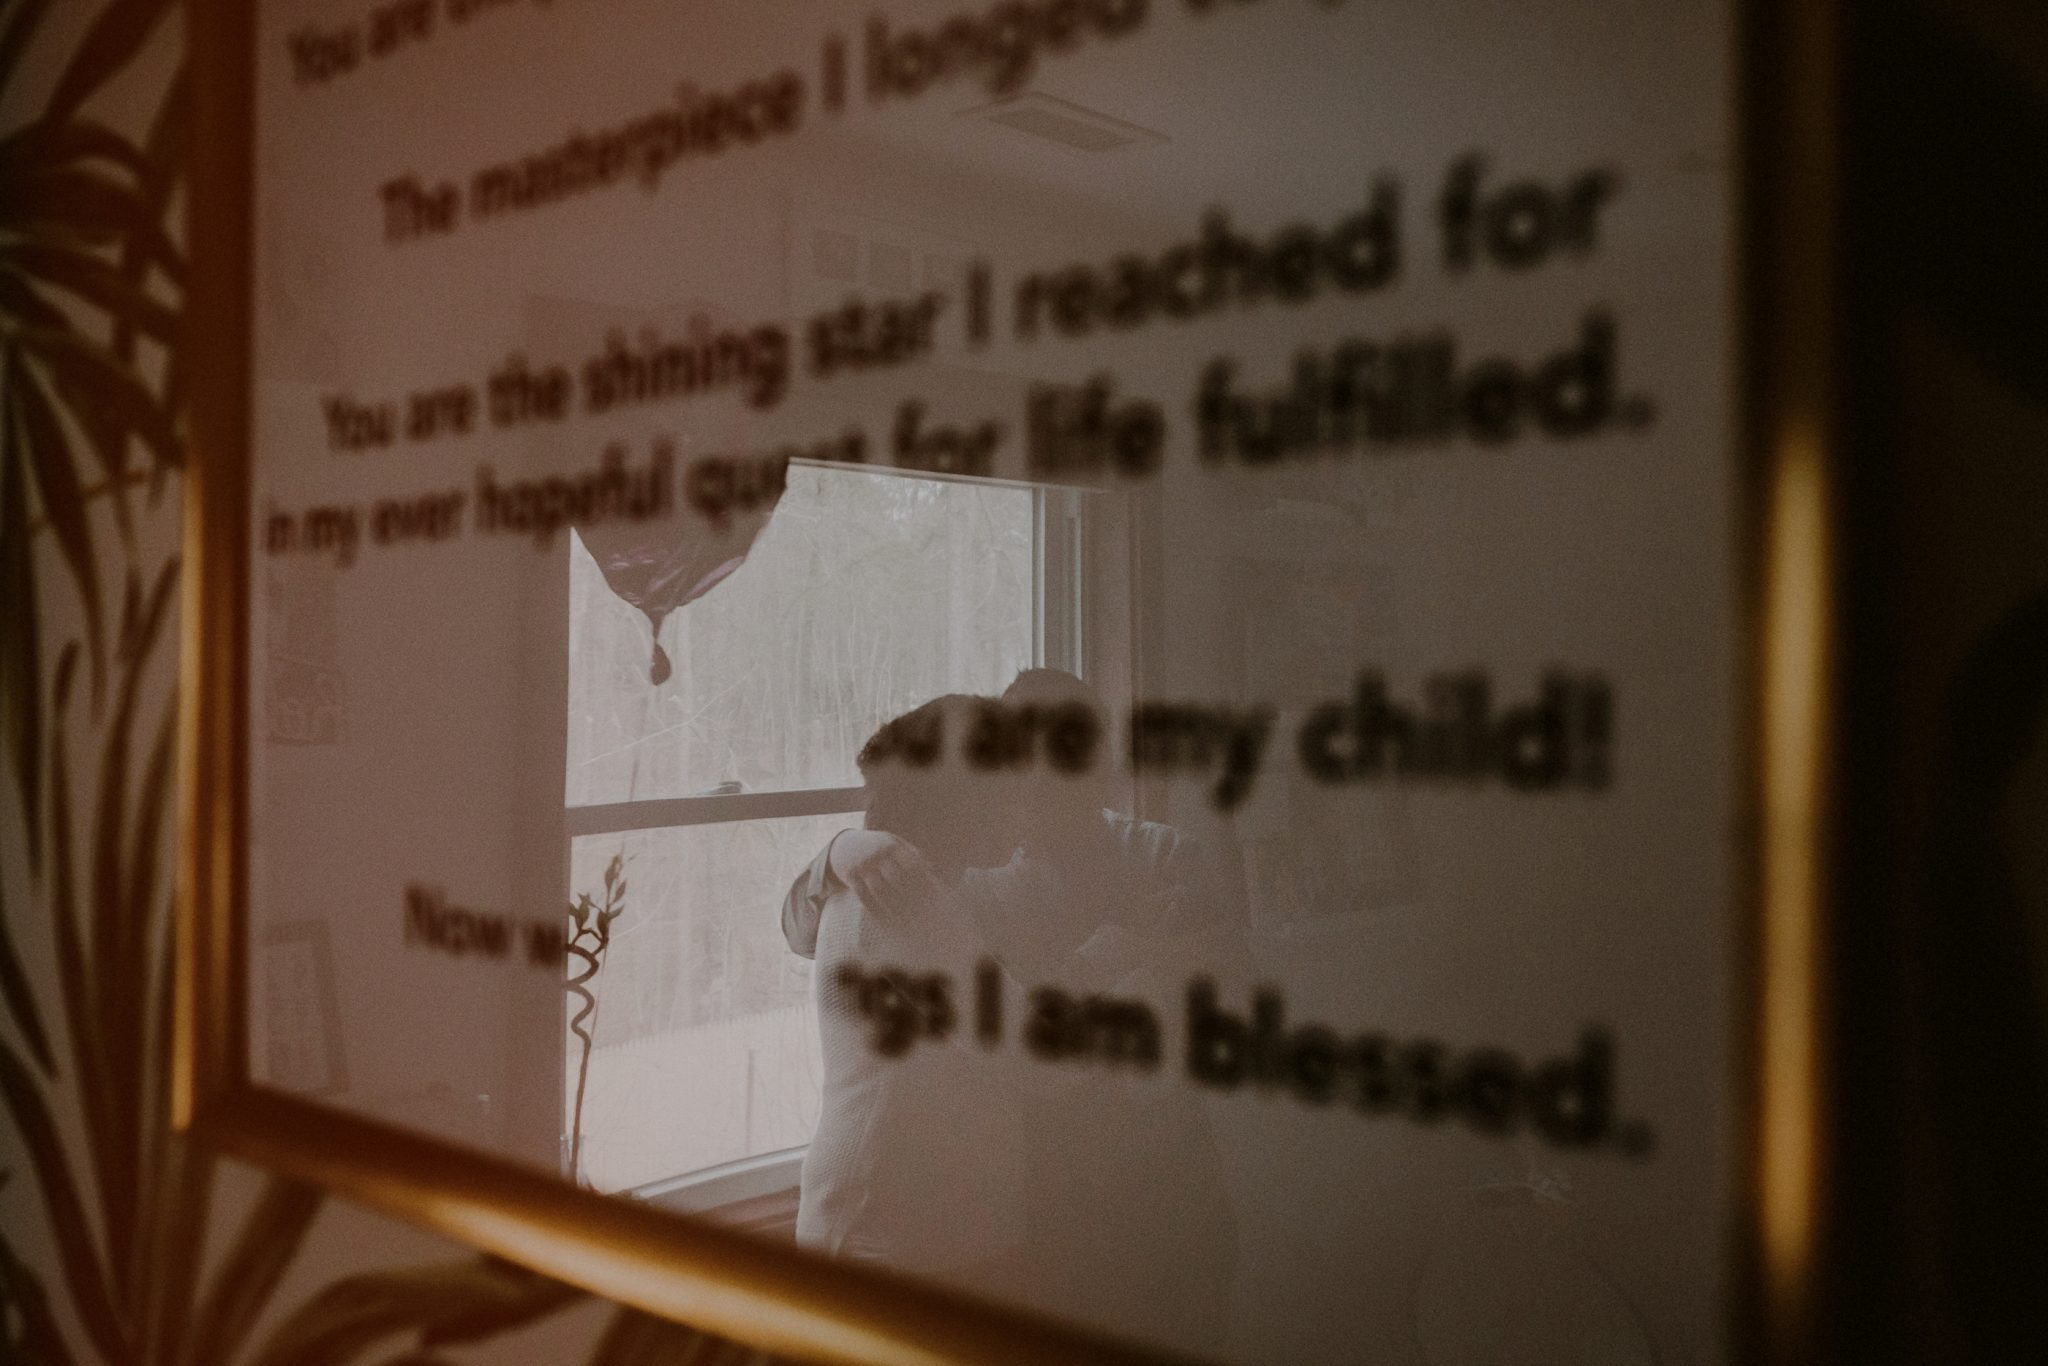 reflection of family portrait seen through biblical quote on framed print on wall